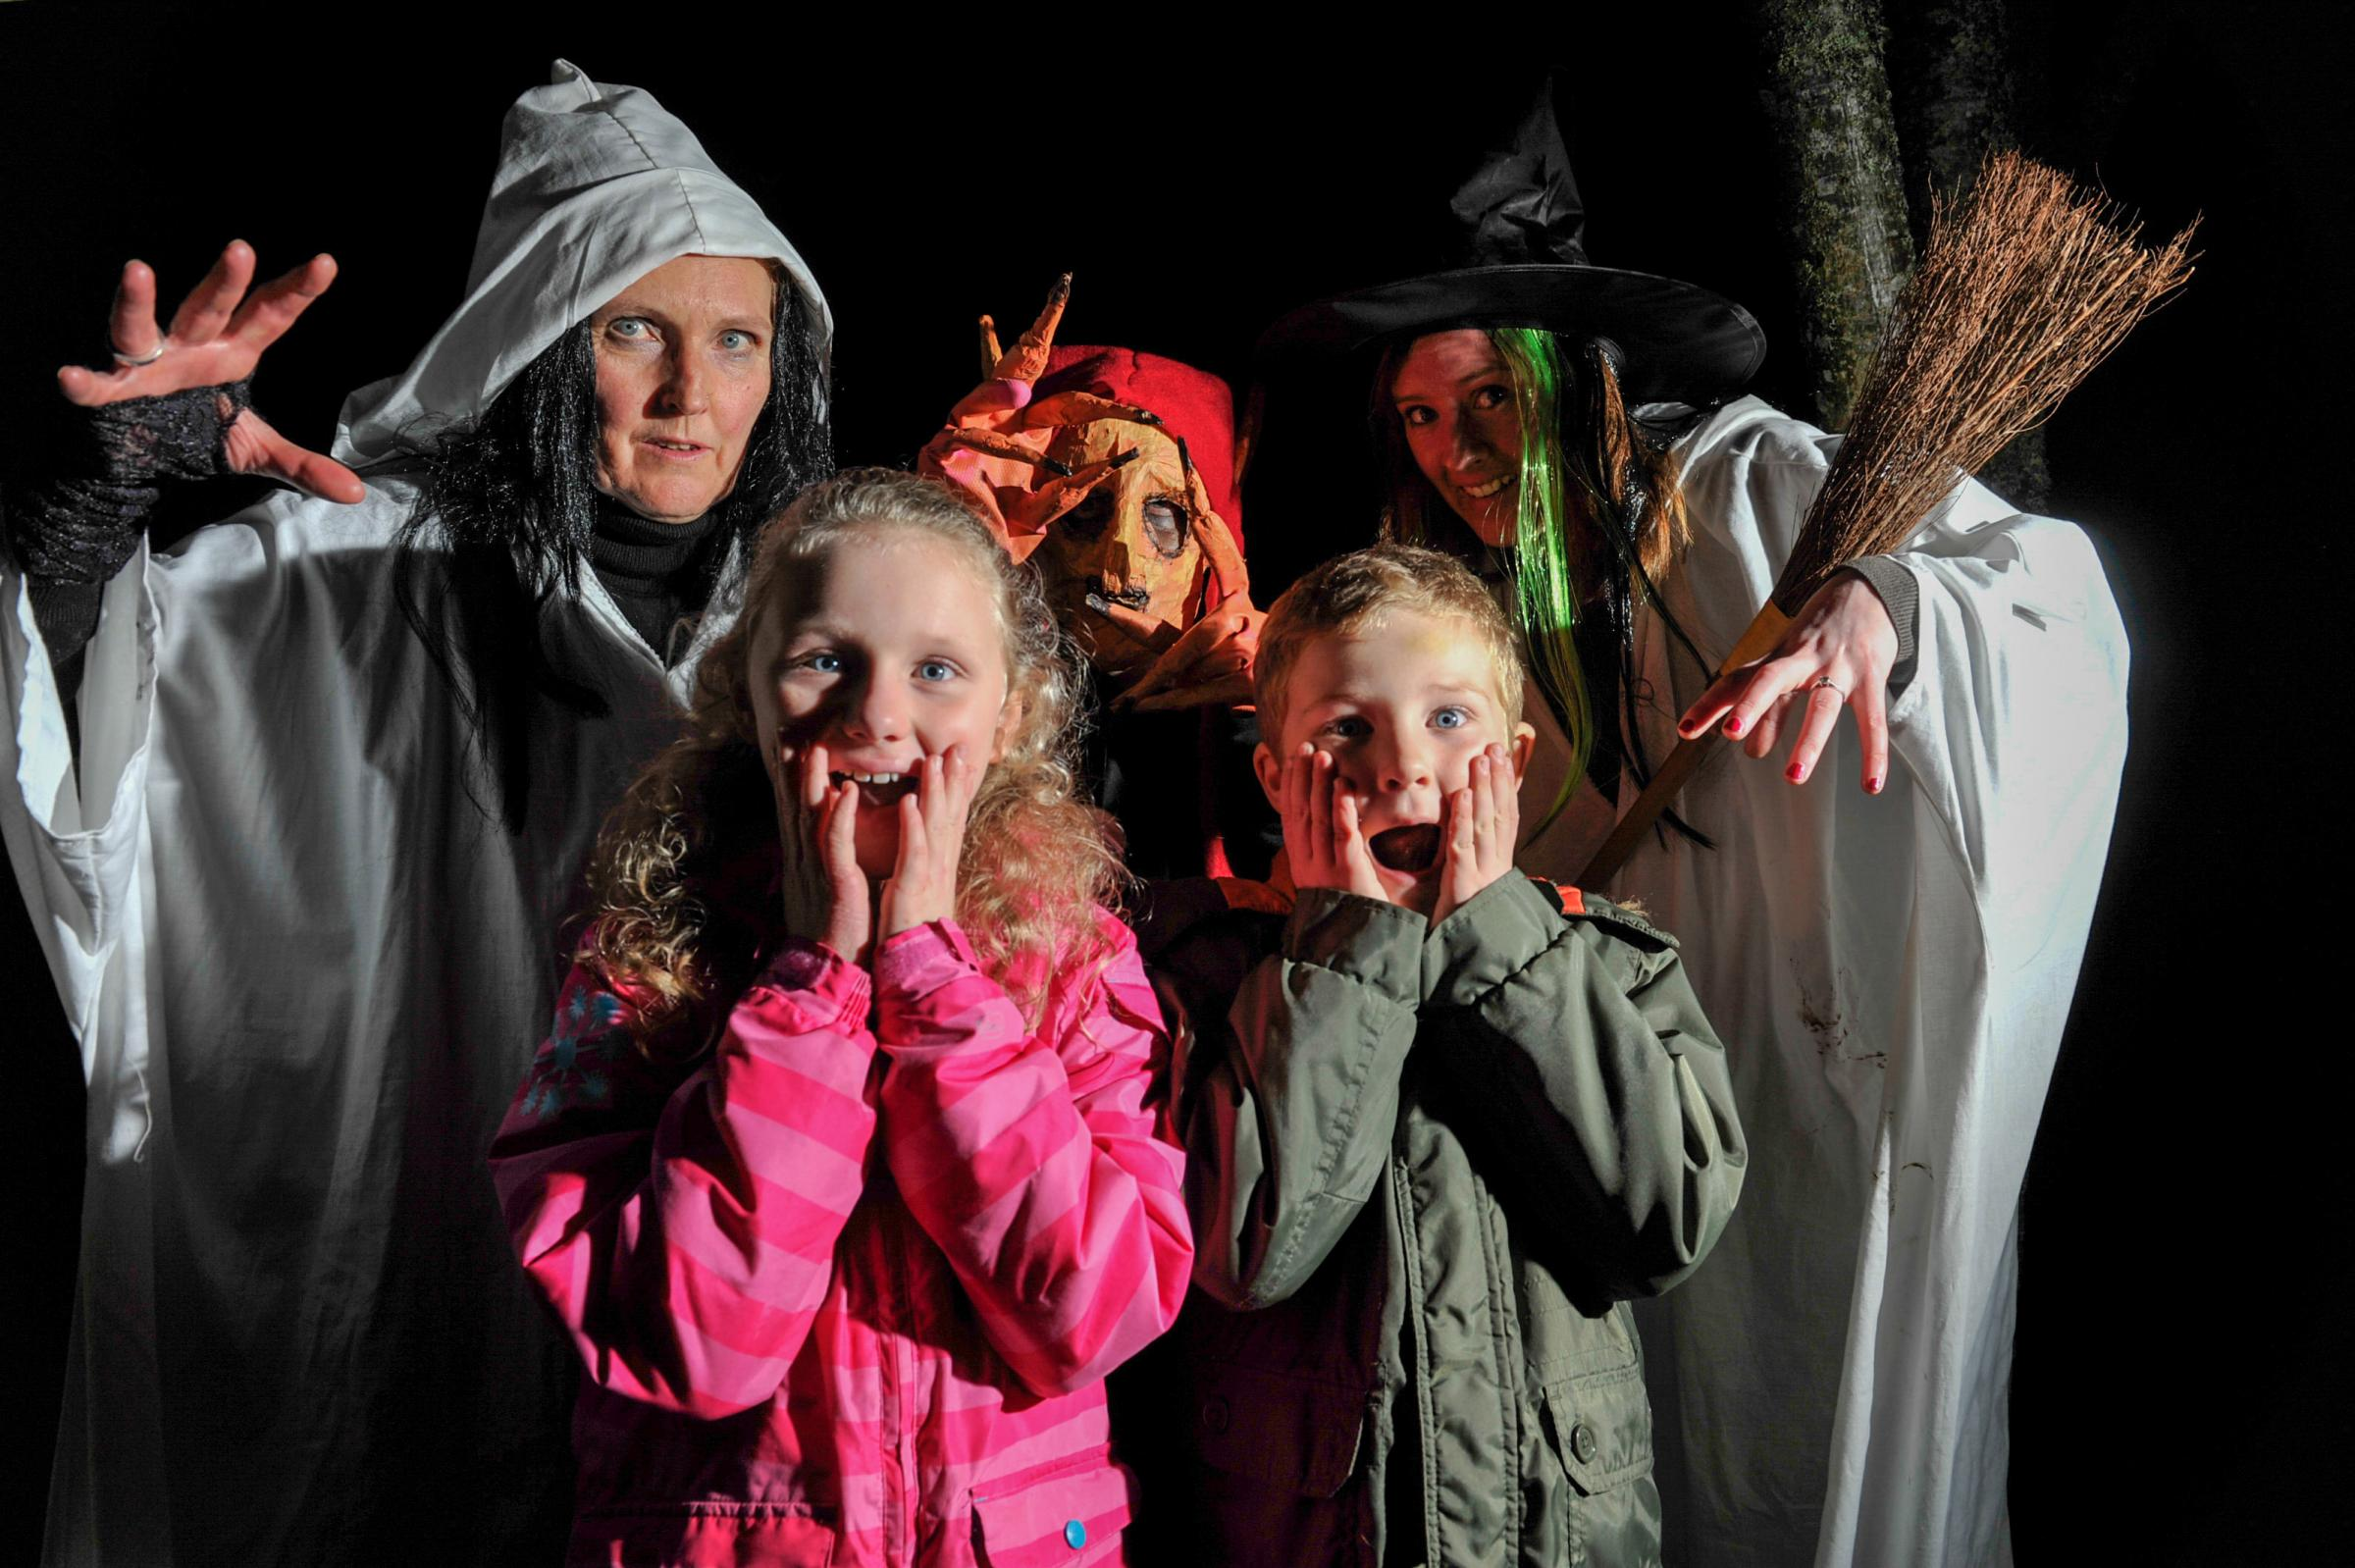 Bowhill's Haunted Halloween. Bowhill estate near Selkirk in the Scottish Borders entertained children and adults in their ghostly walks around the grounds acting out scenes from the area's creepy history.